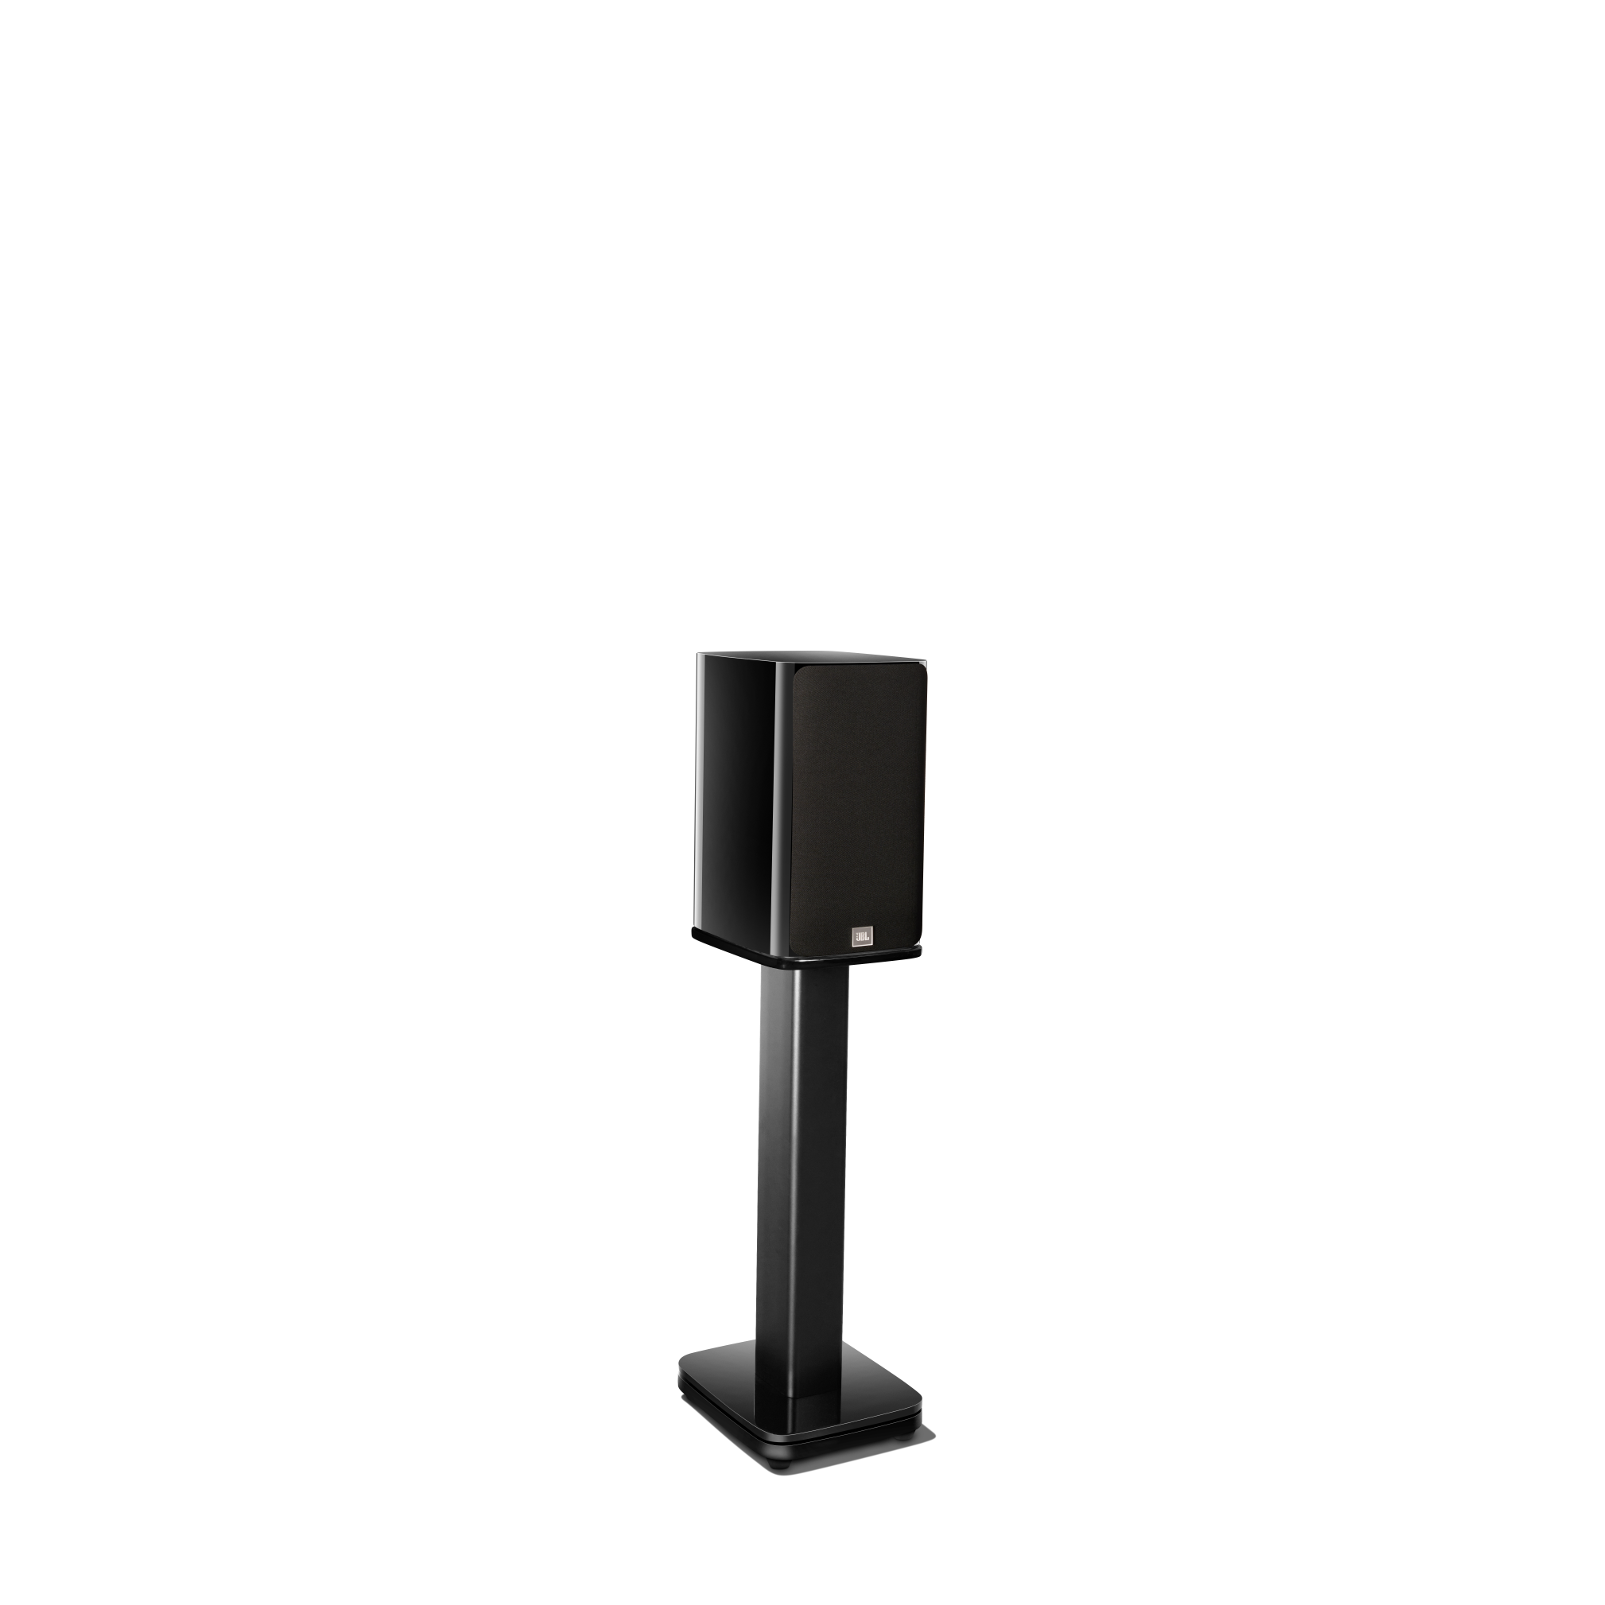 HDI-1600 - Black Gloss - 2-way 6.5-inch (165mm) Bookshelf Loudspeaker - Detailshot 2